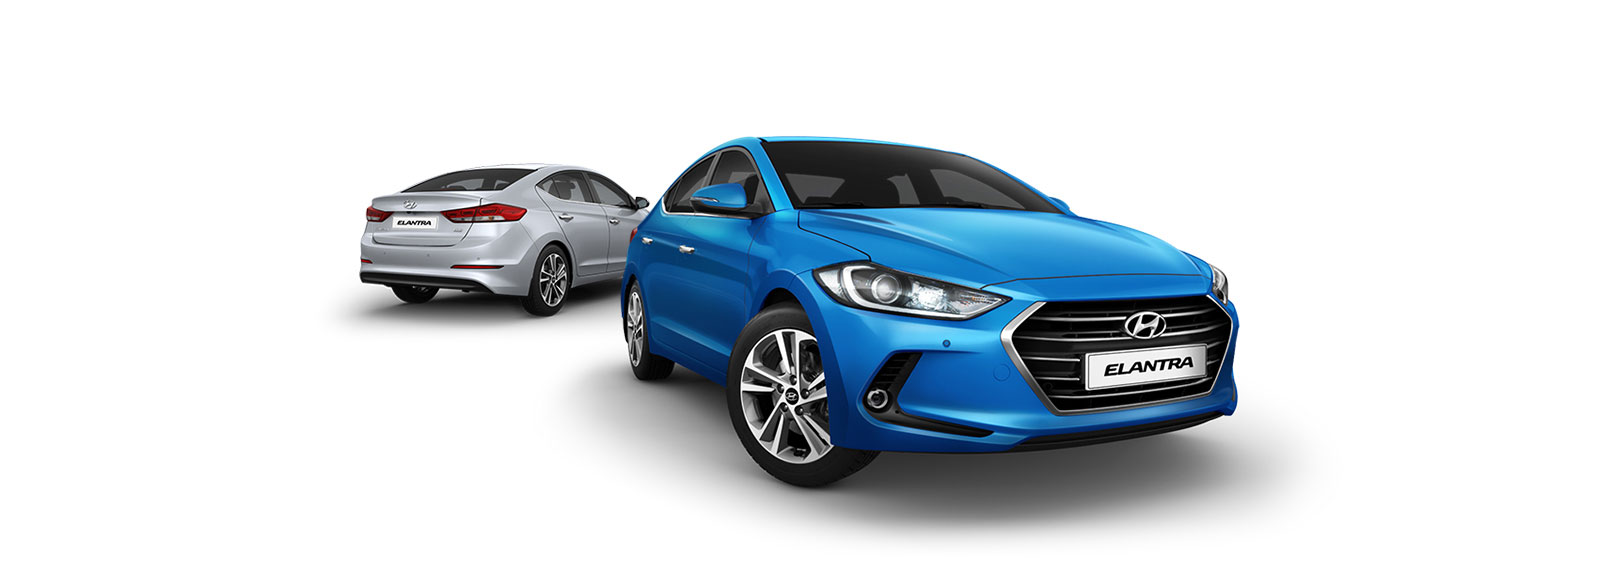 Side front view of blue Elantra in front and rear view of silver Elantra at the back